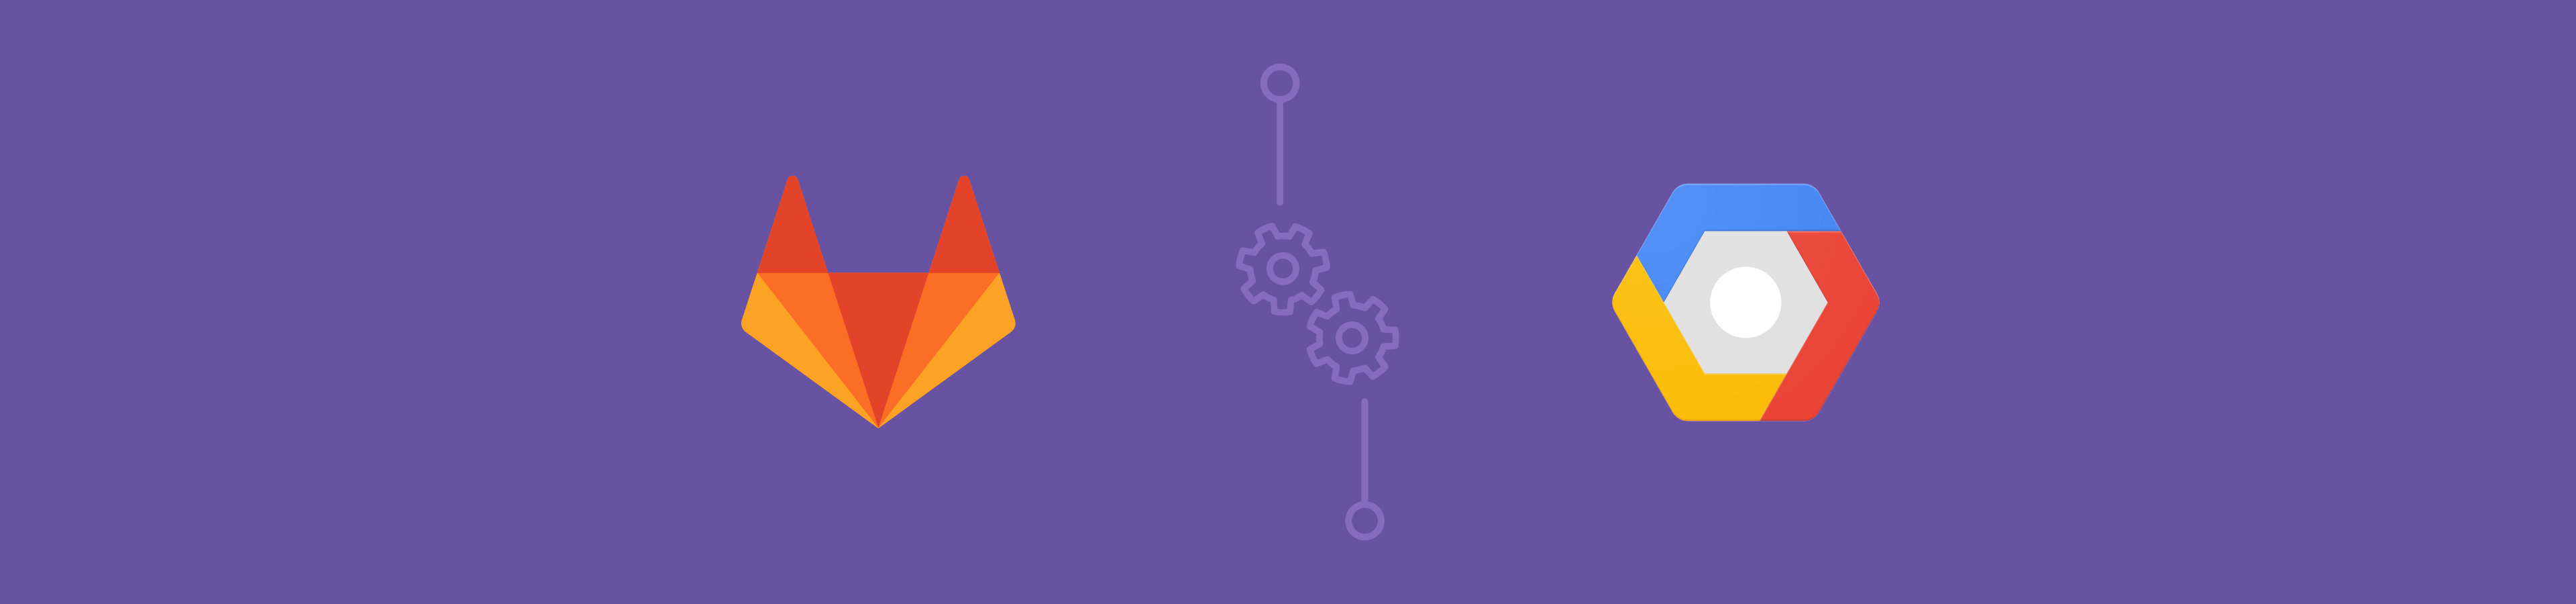 GitLab's journey from Azure to GCP